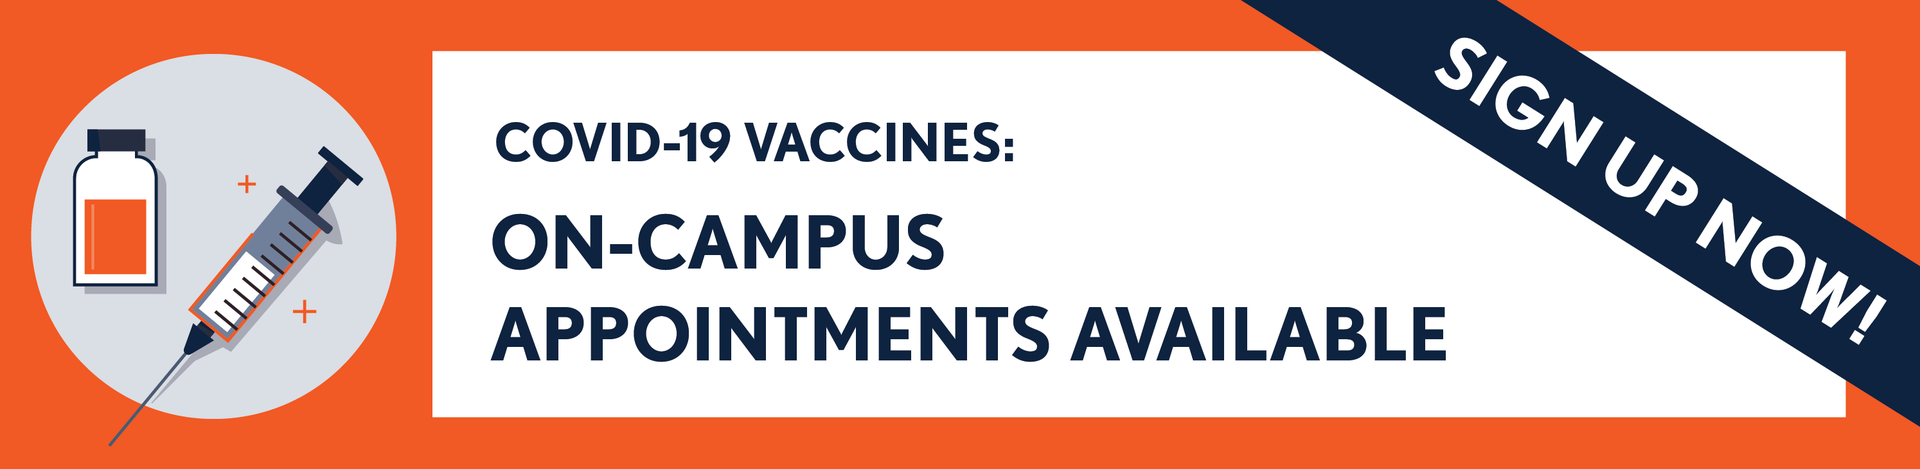 Sign up now for on-campus covid-19 vaccination appointment